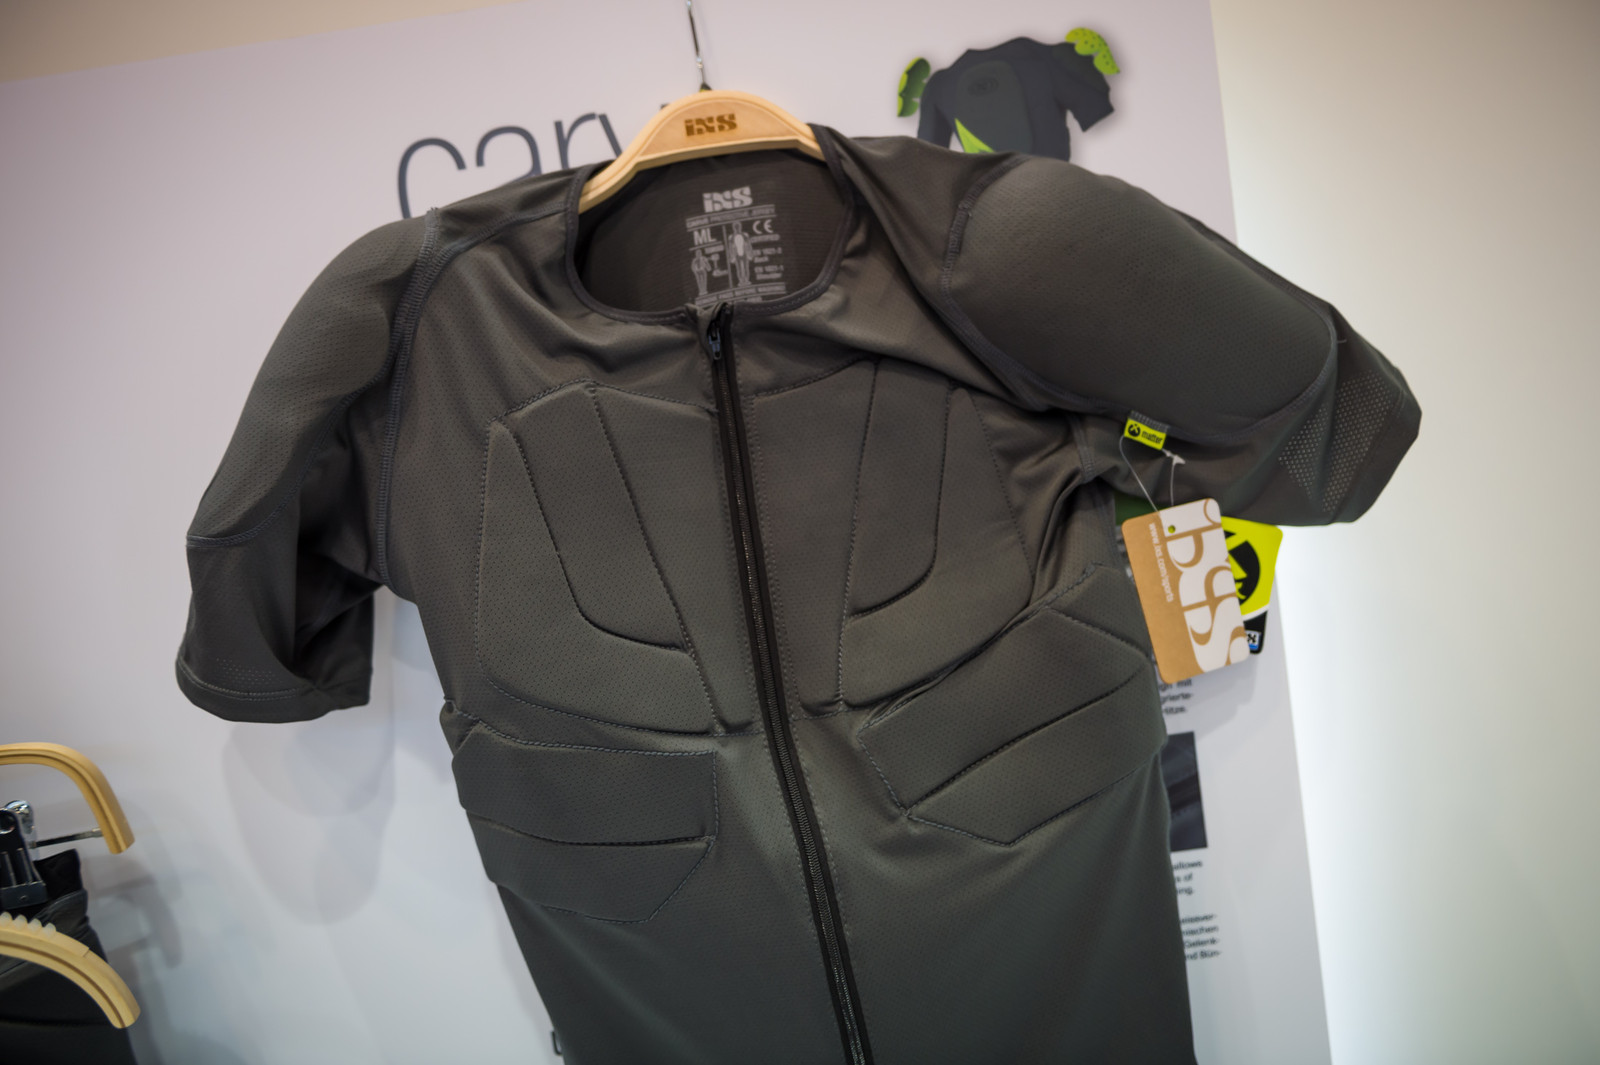 6fbe65a6d Mavic Women s MTB Apparel Range - EUROBIKE - 2017 Mountain Bike Apparel and Protective  Gear - Mountain Biking Pictures - Vital MTB